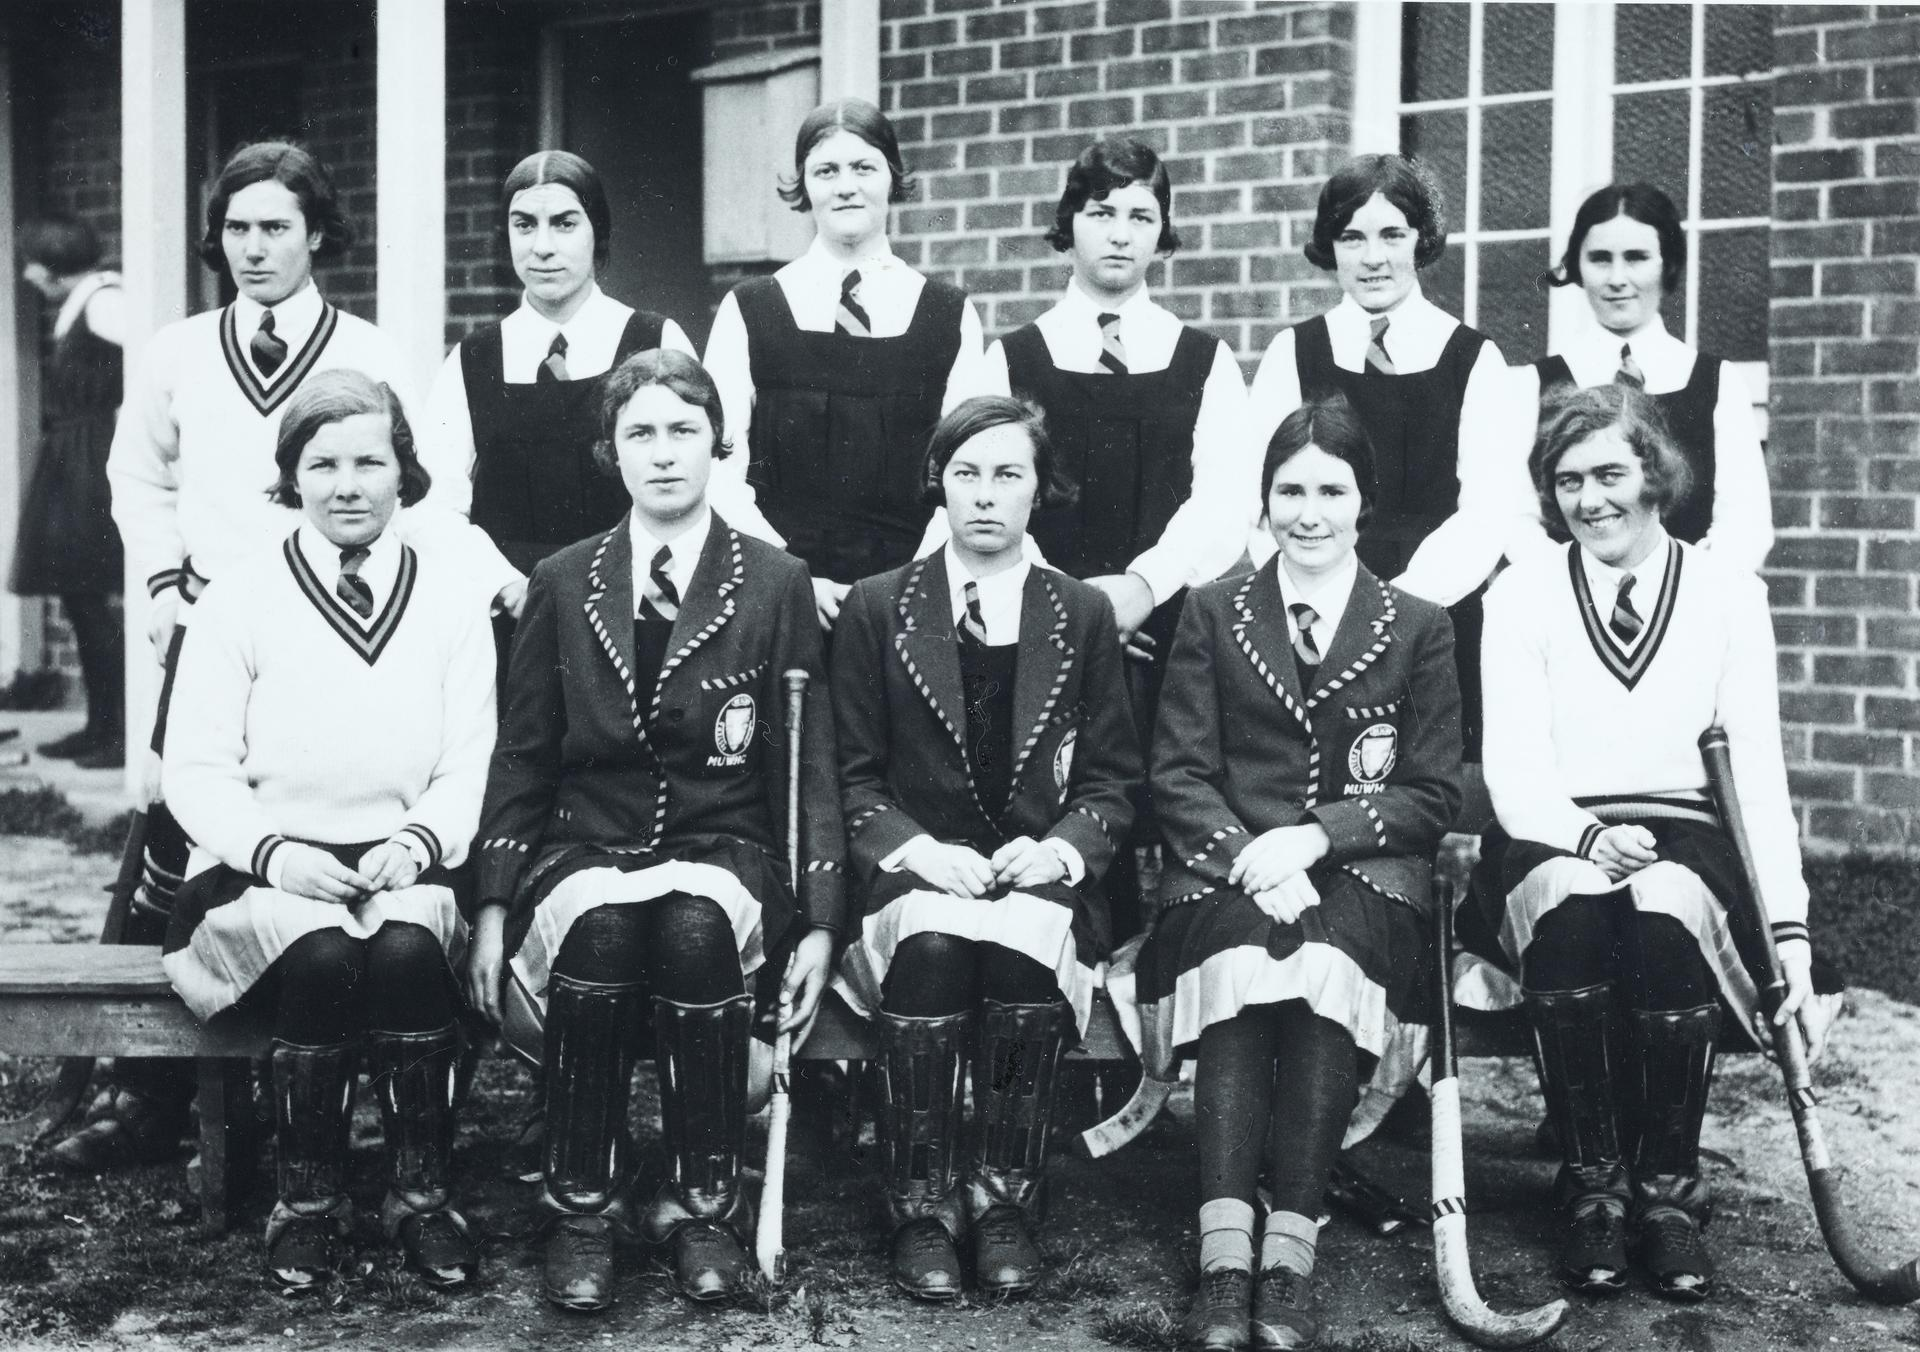 Barbara Falk (left, back row)